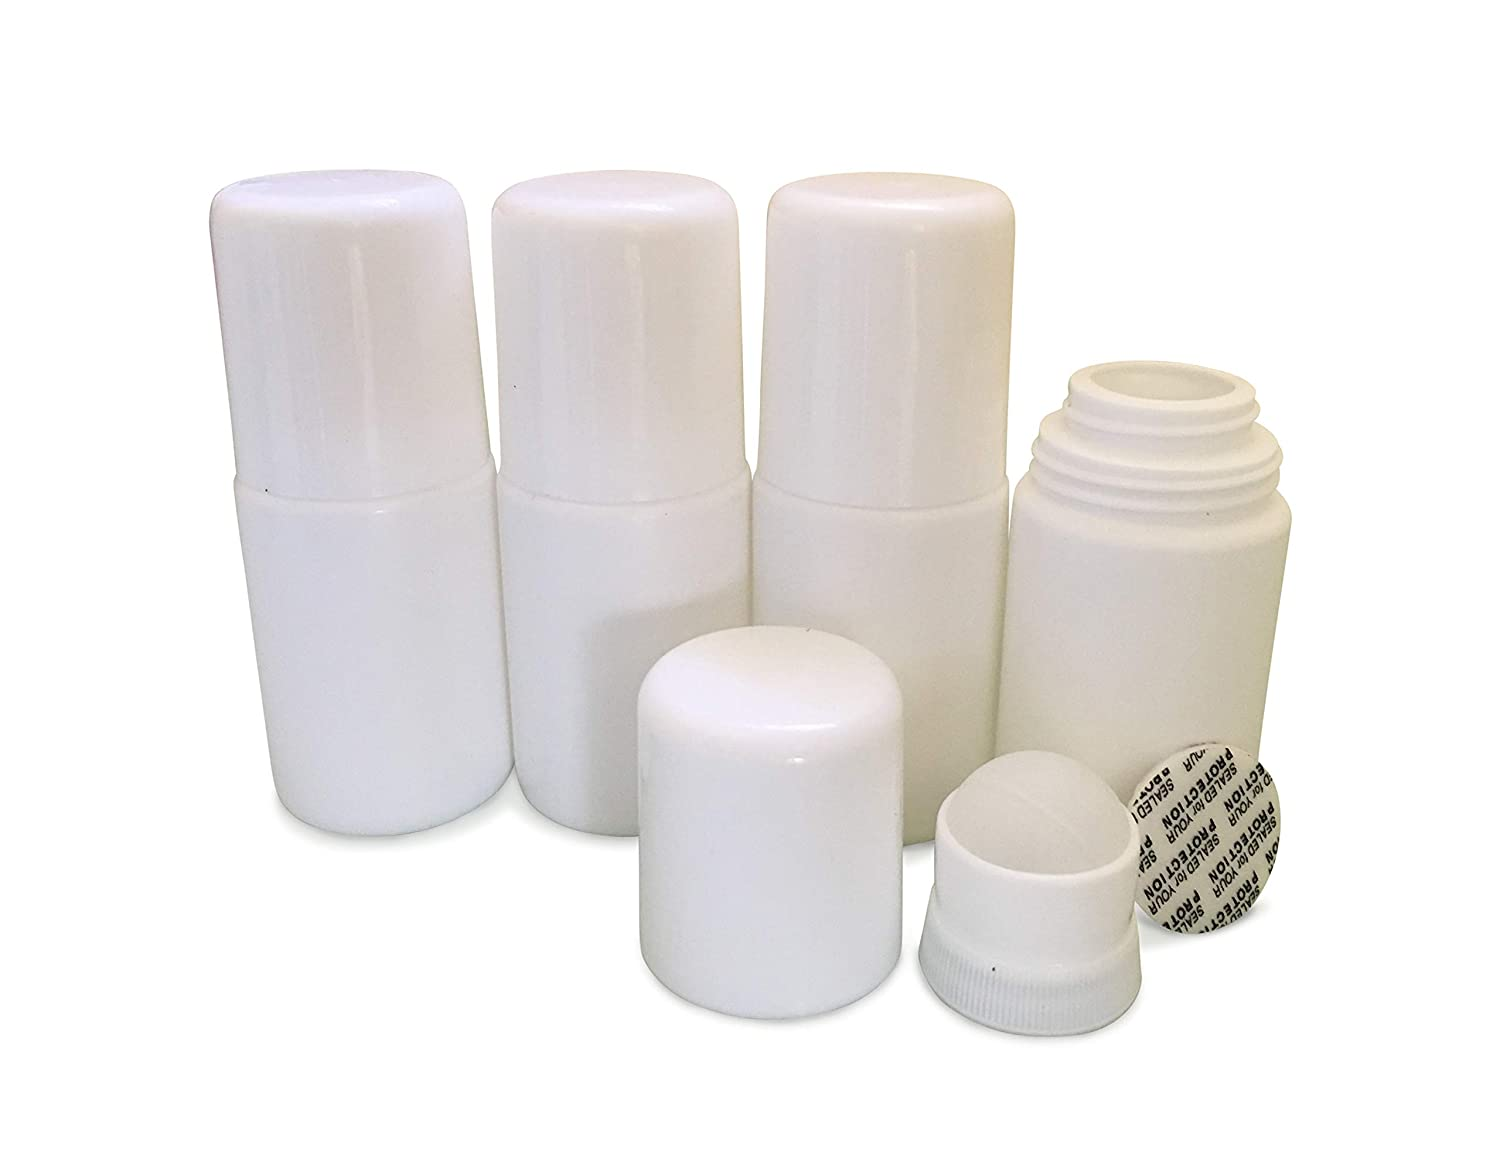 MagicHappens Empty Refillable Roll On Bottles – Recyclable 50ml Leak-Proof  DIY Deodorant Containers